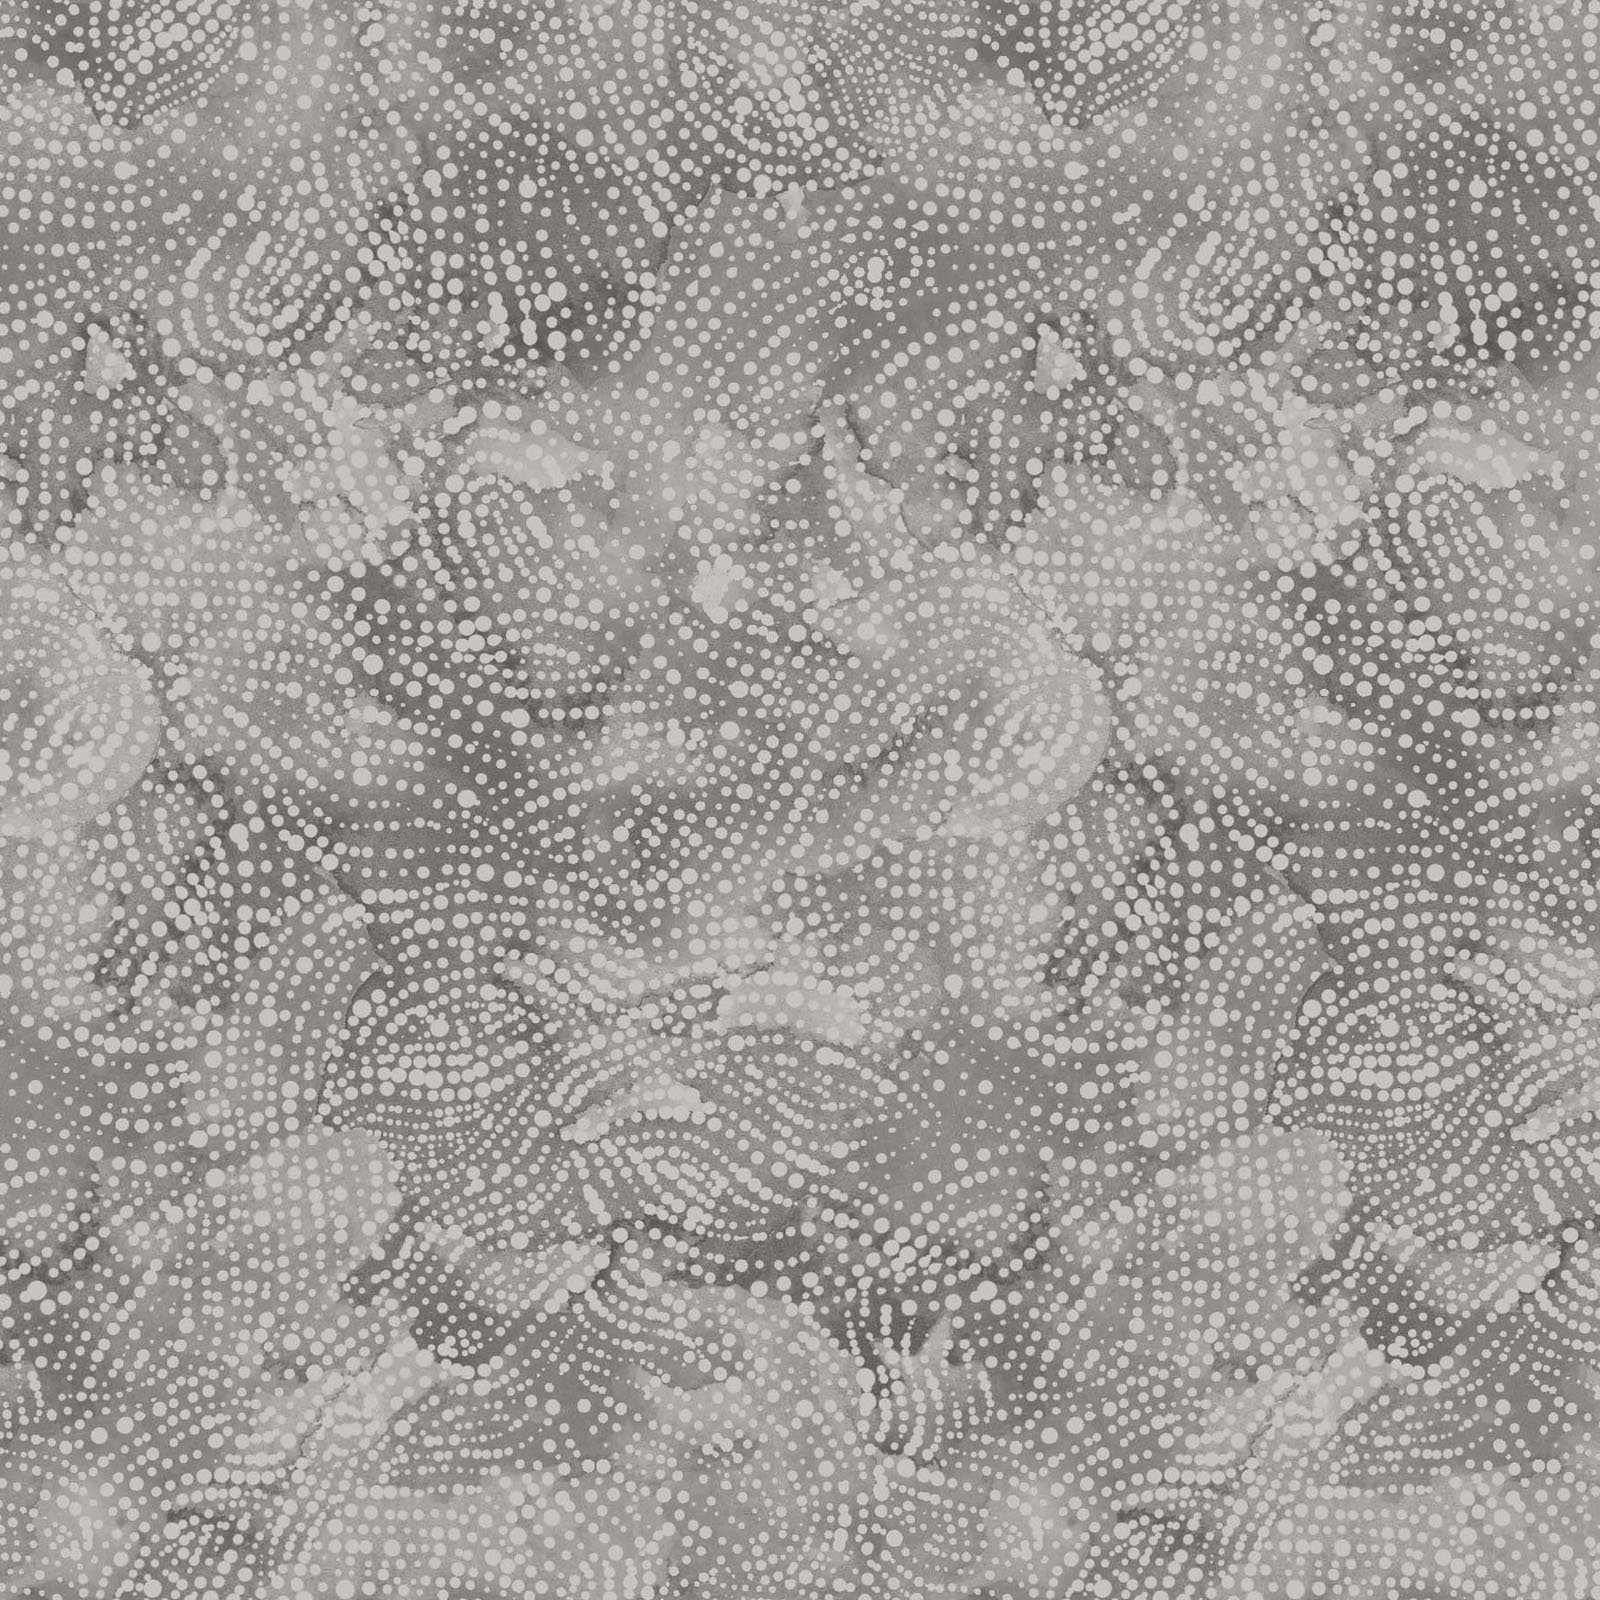 SERE-4492 SS - SERENITY BY JETTI HOME DK GREY - ARRIVING IN JULY 2021